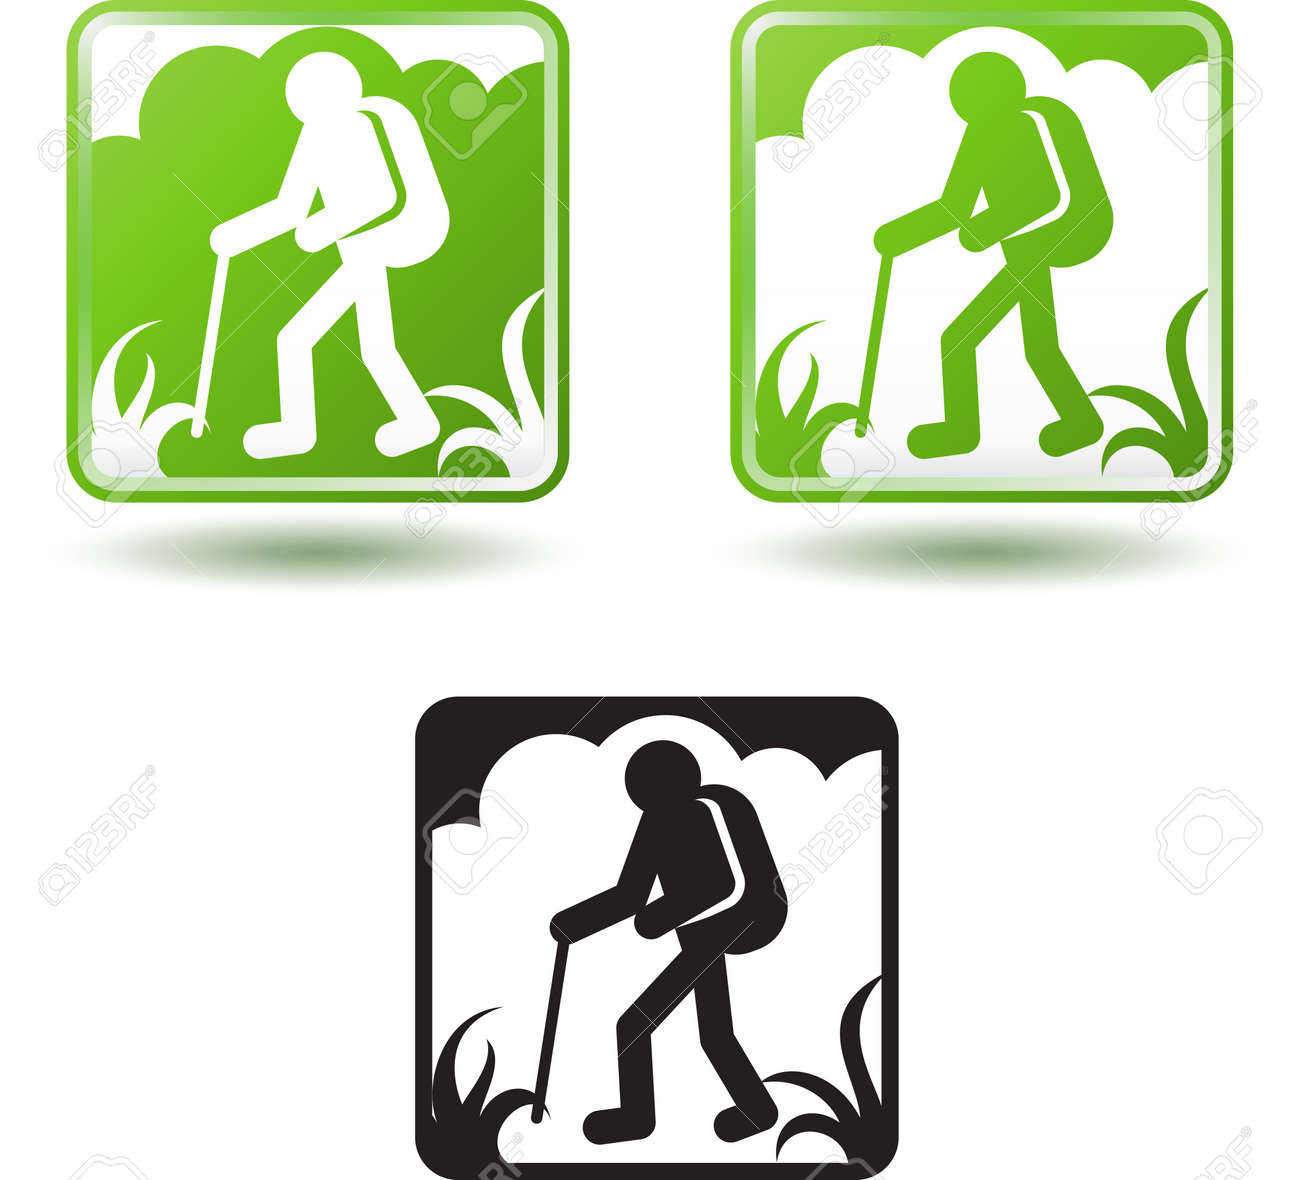 Tourism and active lifestyle, hiking Stock Vector - 13263266